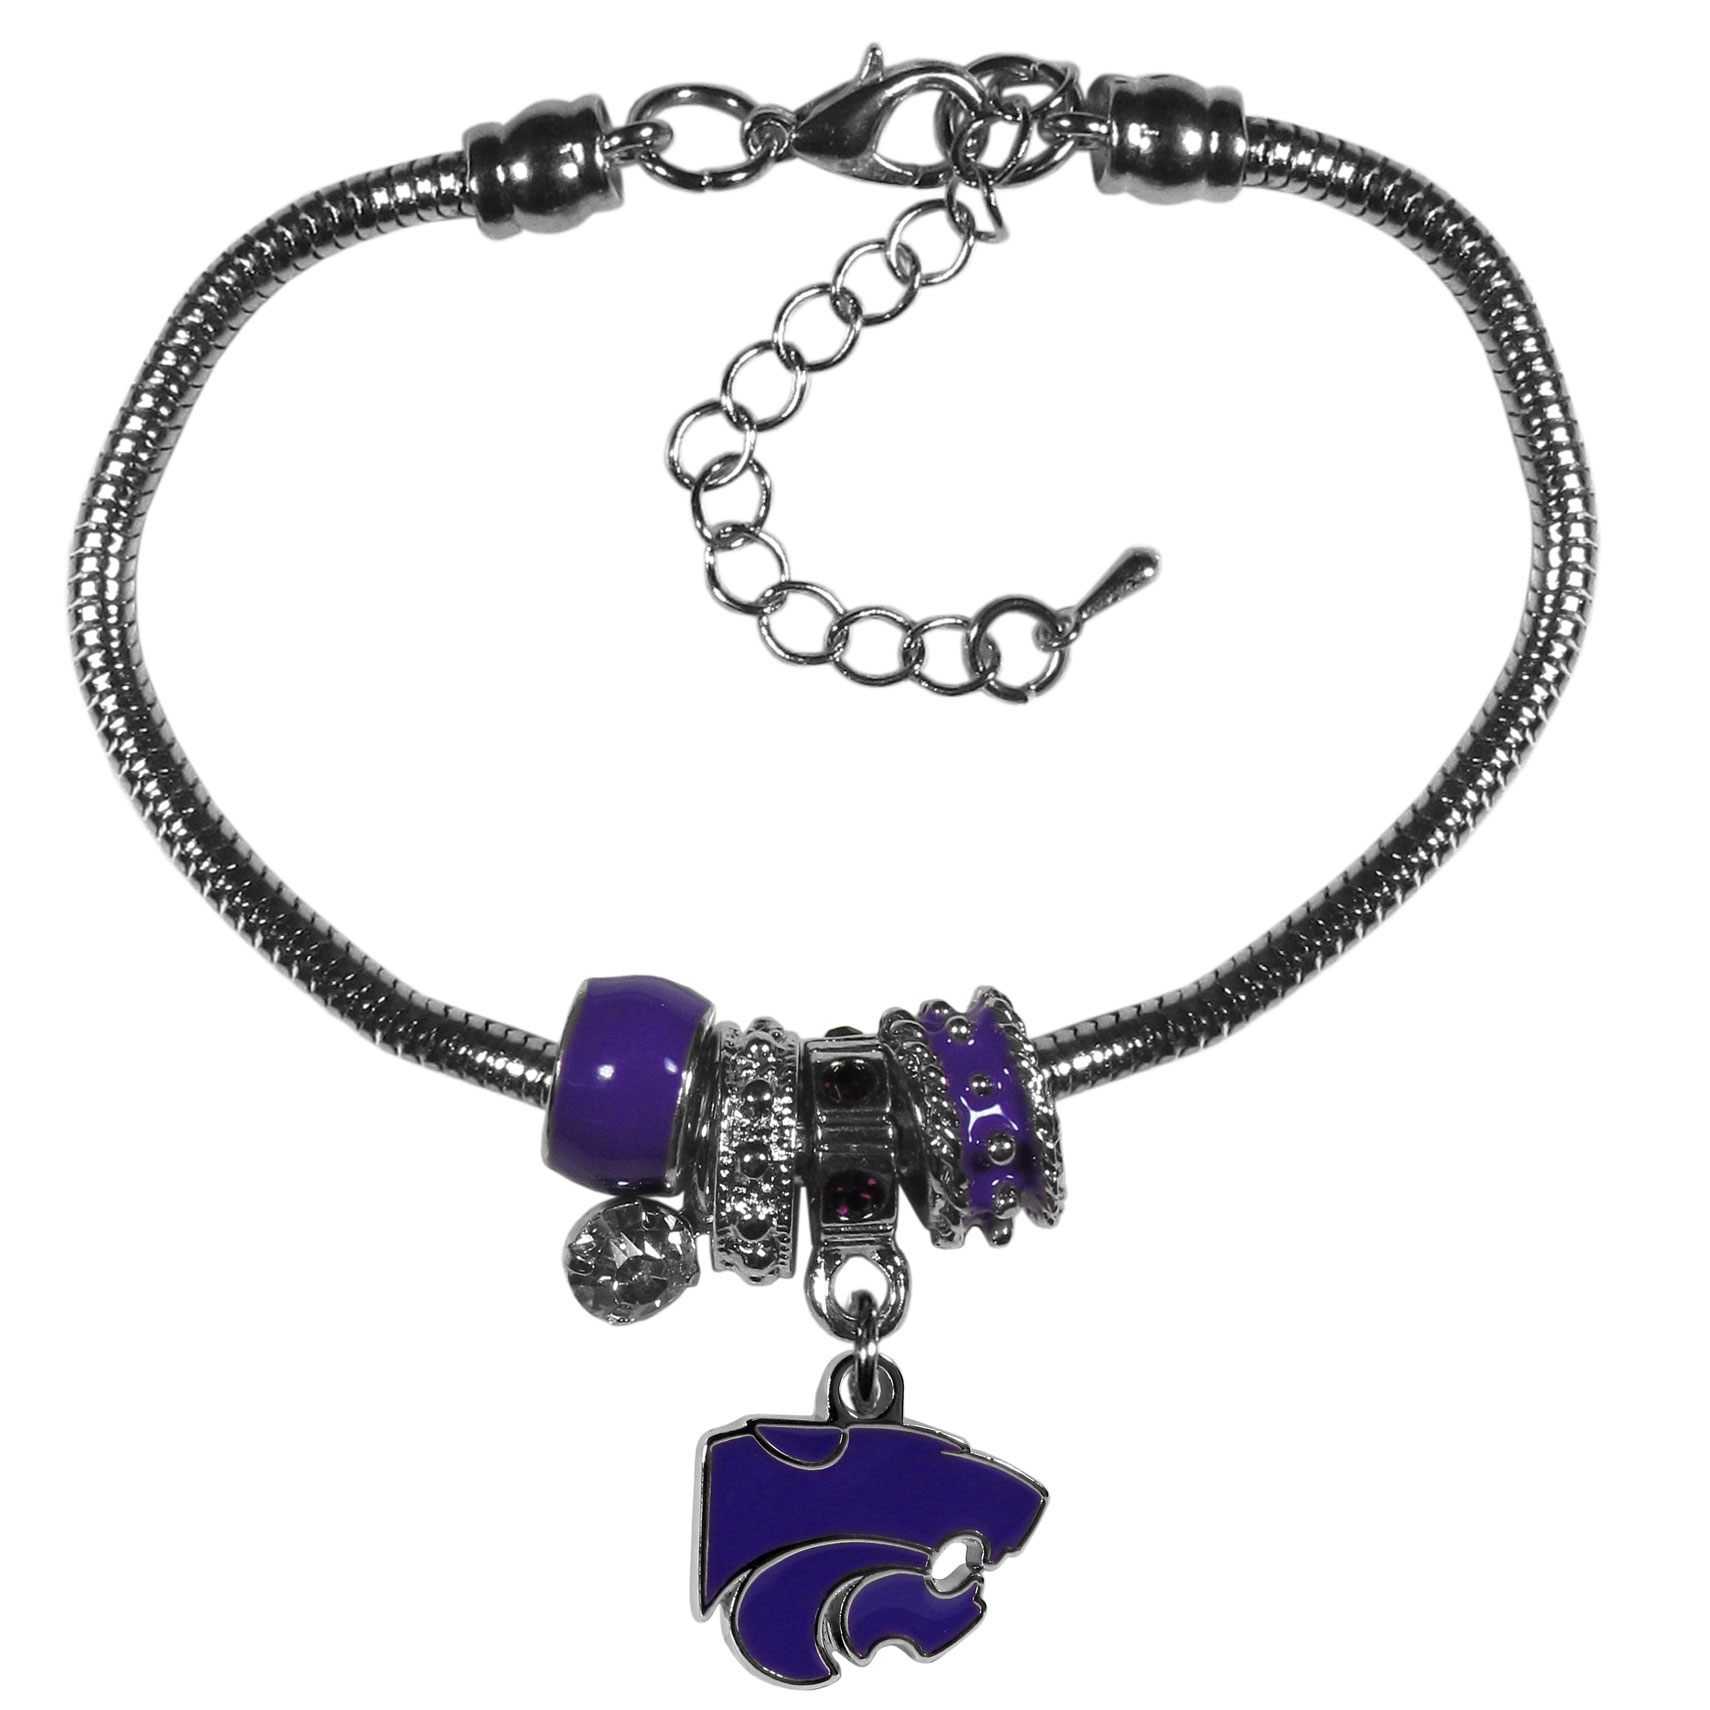 Kansas St. Wildcats Euro Bead Bracelet - We have combined the wildly popular Euro style beads with your favorite team to create our  Kansas St. Wildcats bead bracelet. The 7.5 inch snake chain with 2 inch extender features 4 Euro beads with enameled team colors and rhinestone accents with a high polish, nickel free charm and rhinestone charm. Perfect way to show off your team pride.